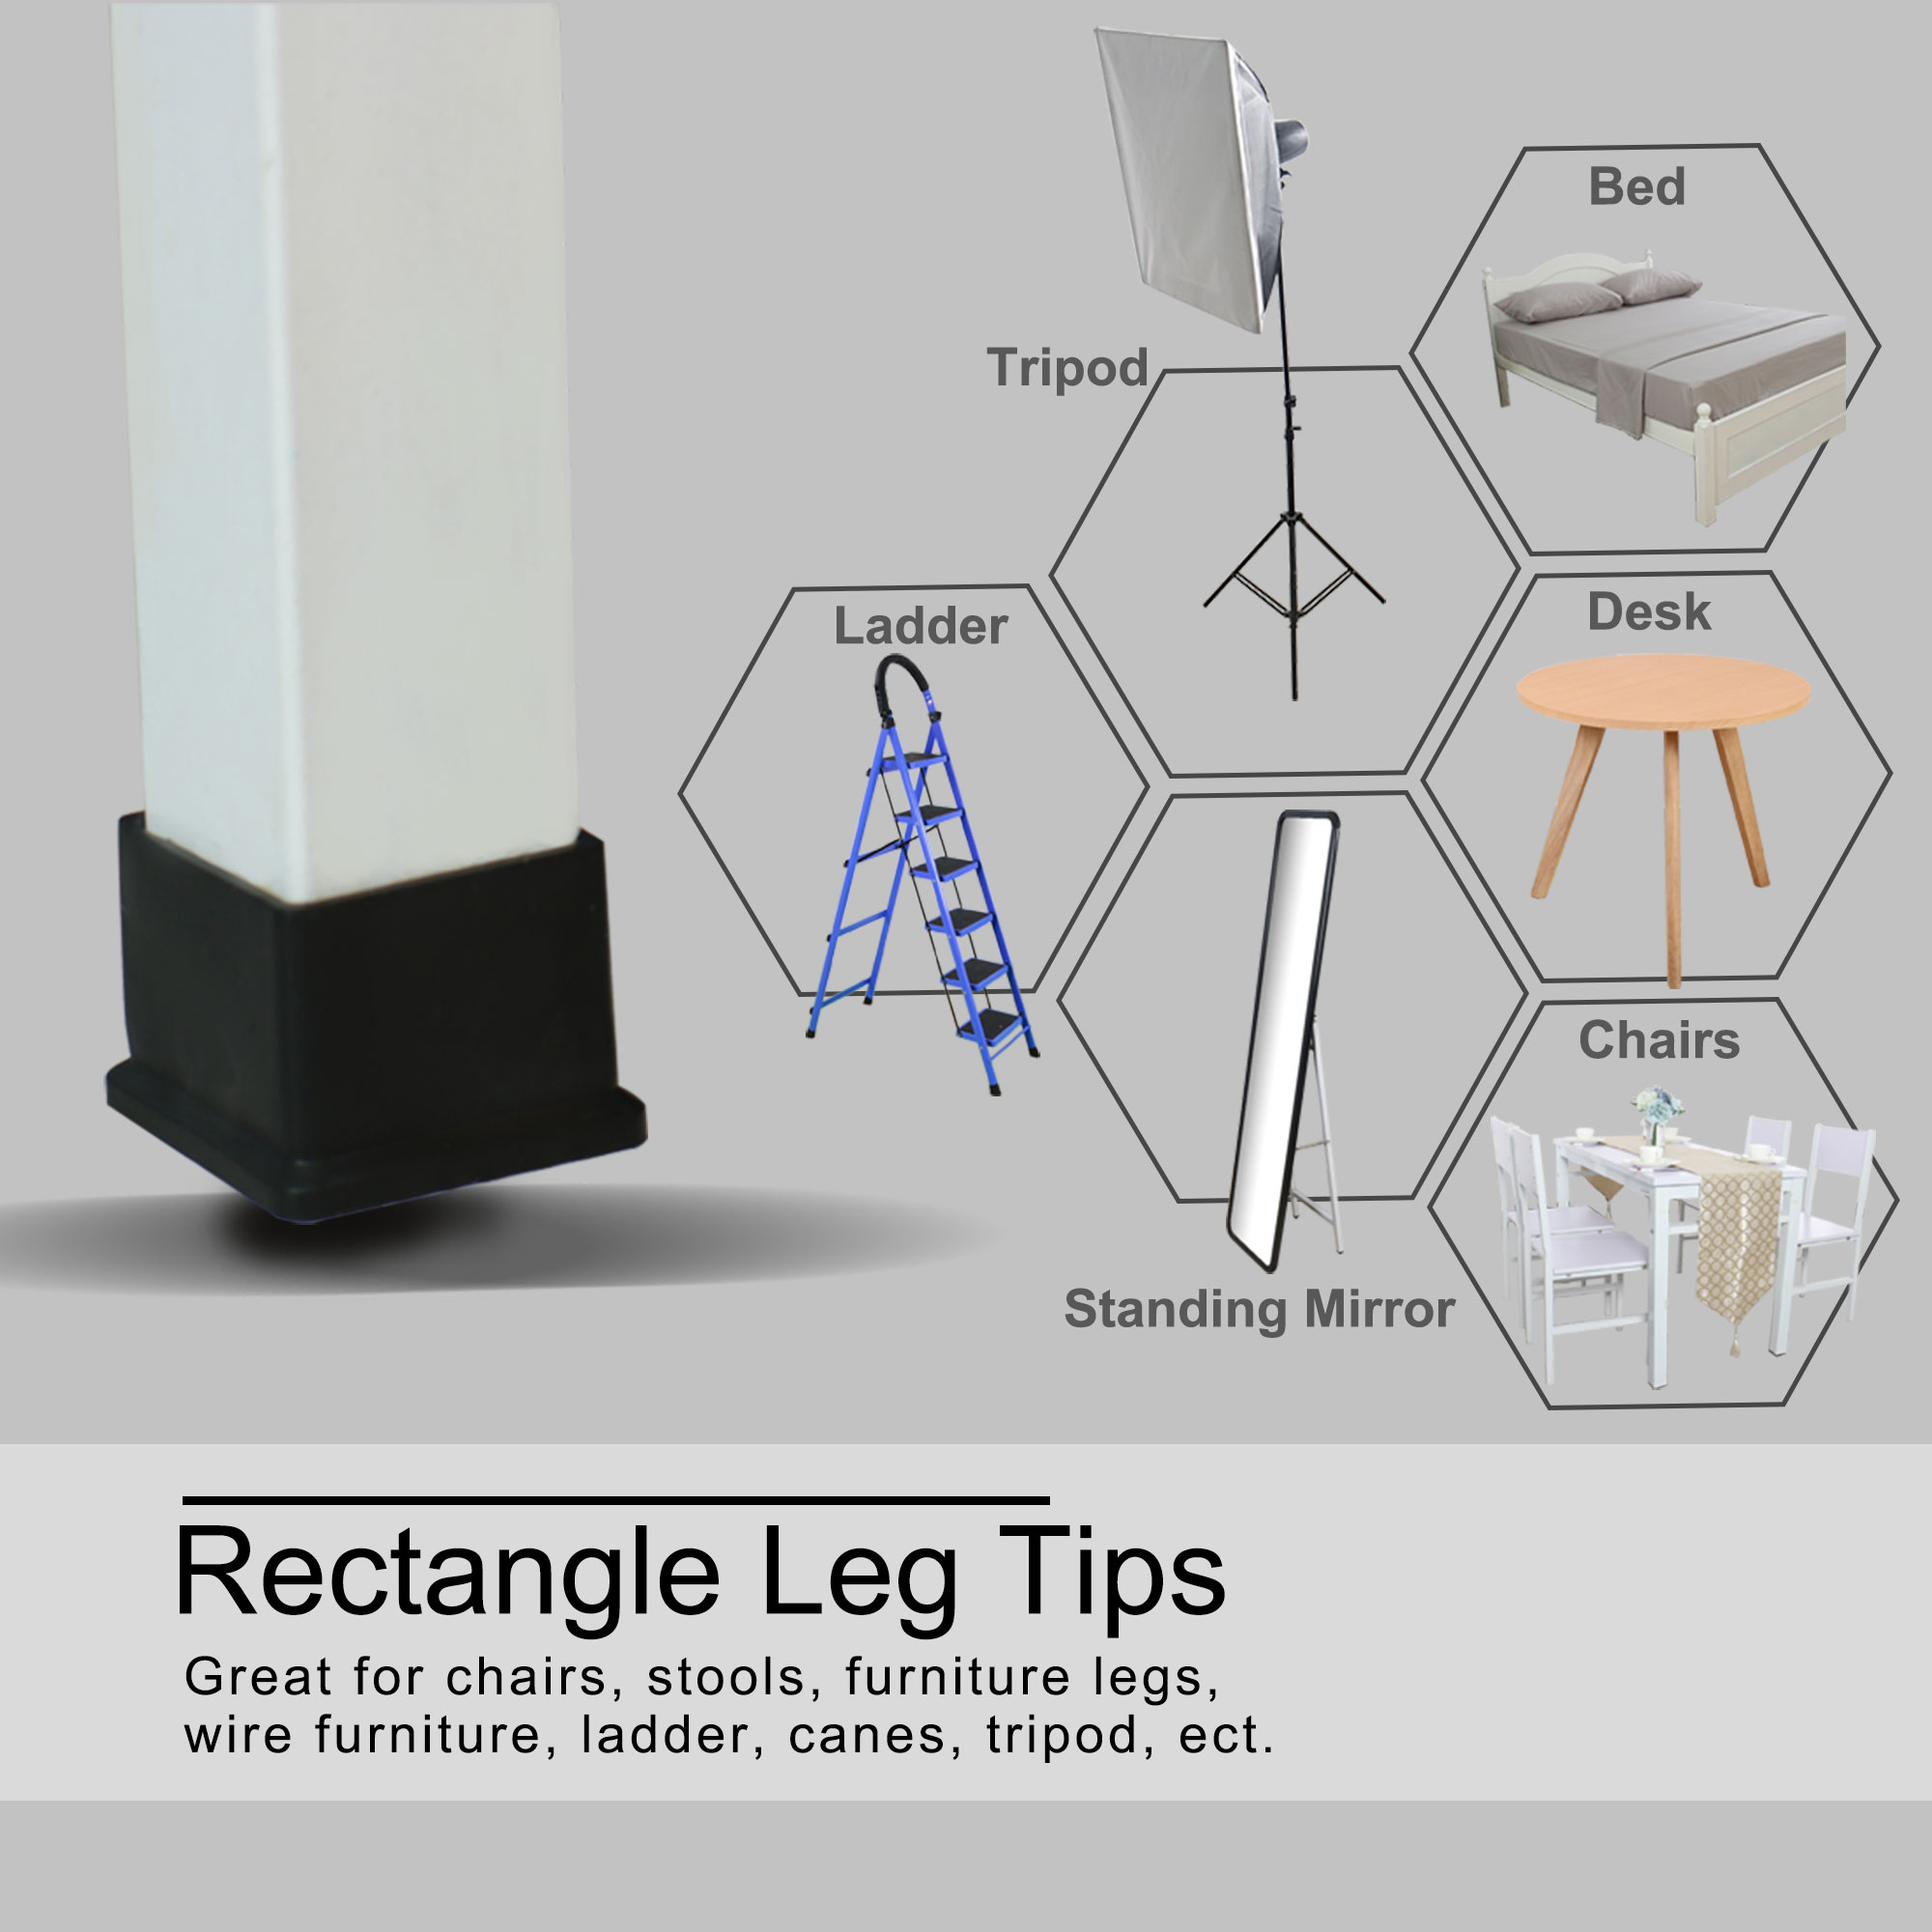 "Desk Table Leg Caps End Tip Home Furniture Protector 8pcs 1.18""x1.18"" (30x30mm) - image 5 of 7"